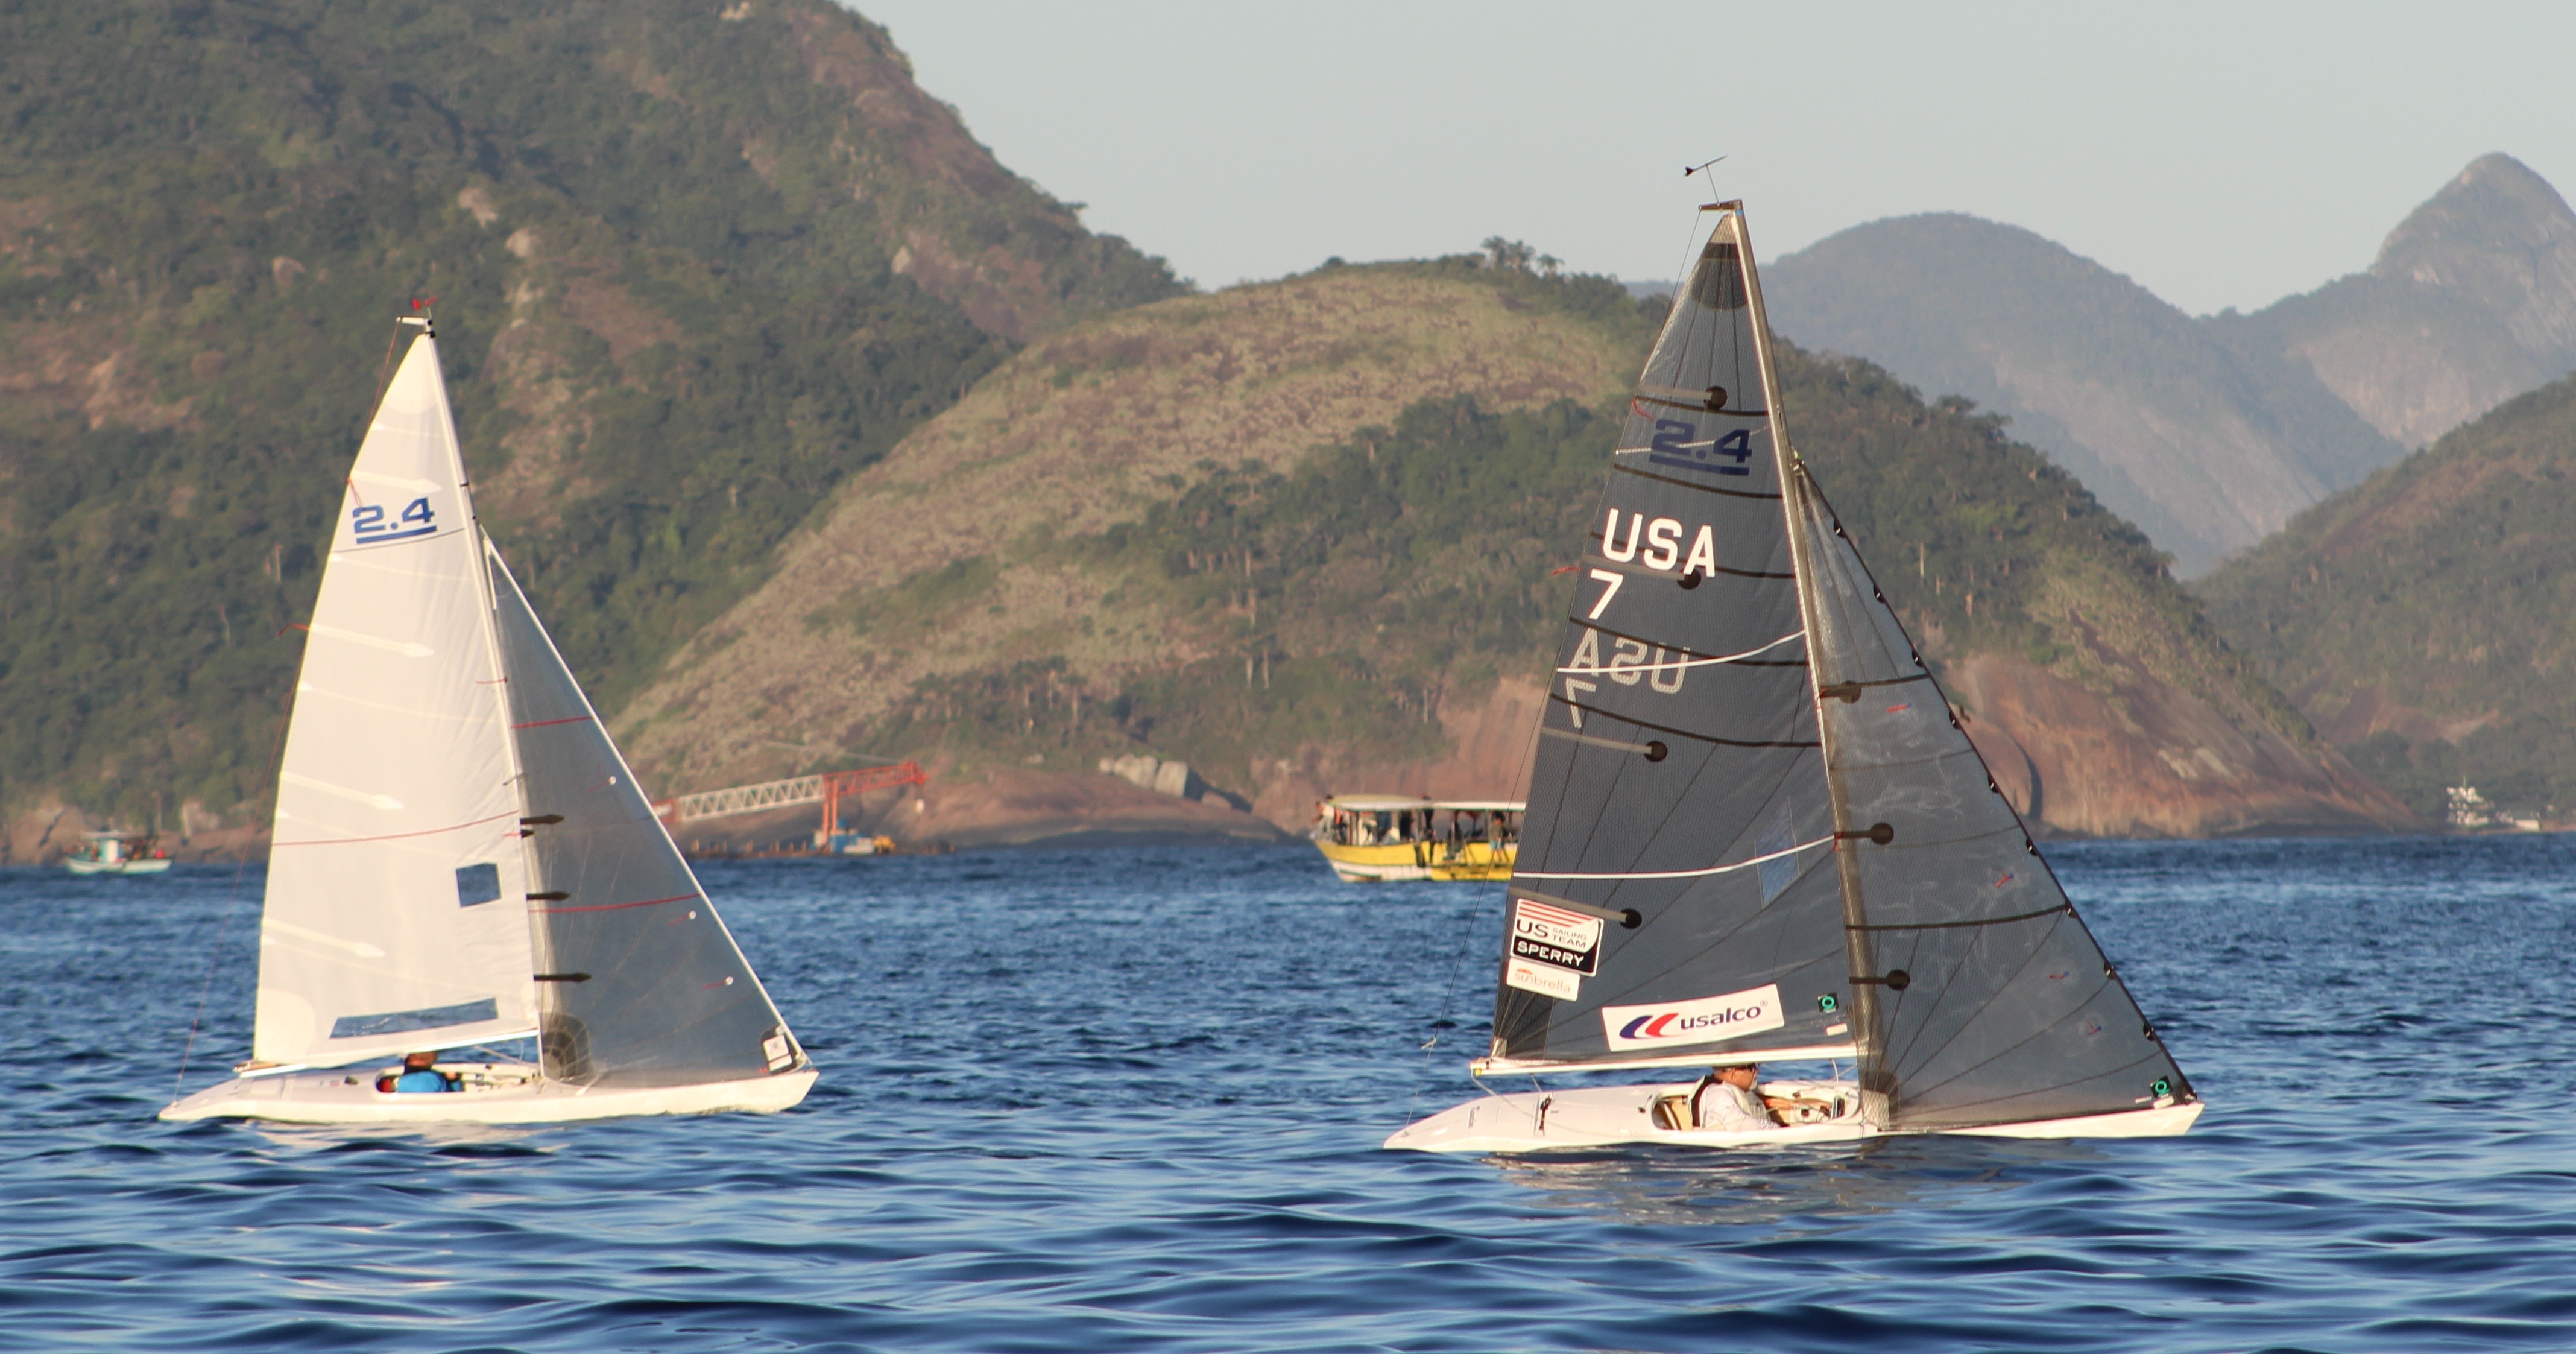 international waters rc boats with Report On 1st Session In Rio International Training Paralympic Sailing Regatta on 370612876206 likewise Propeller Charts together with Index together with 150775625559 likewise 1989report.